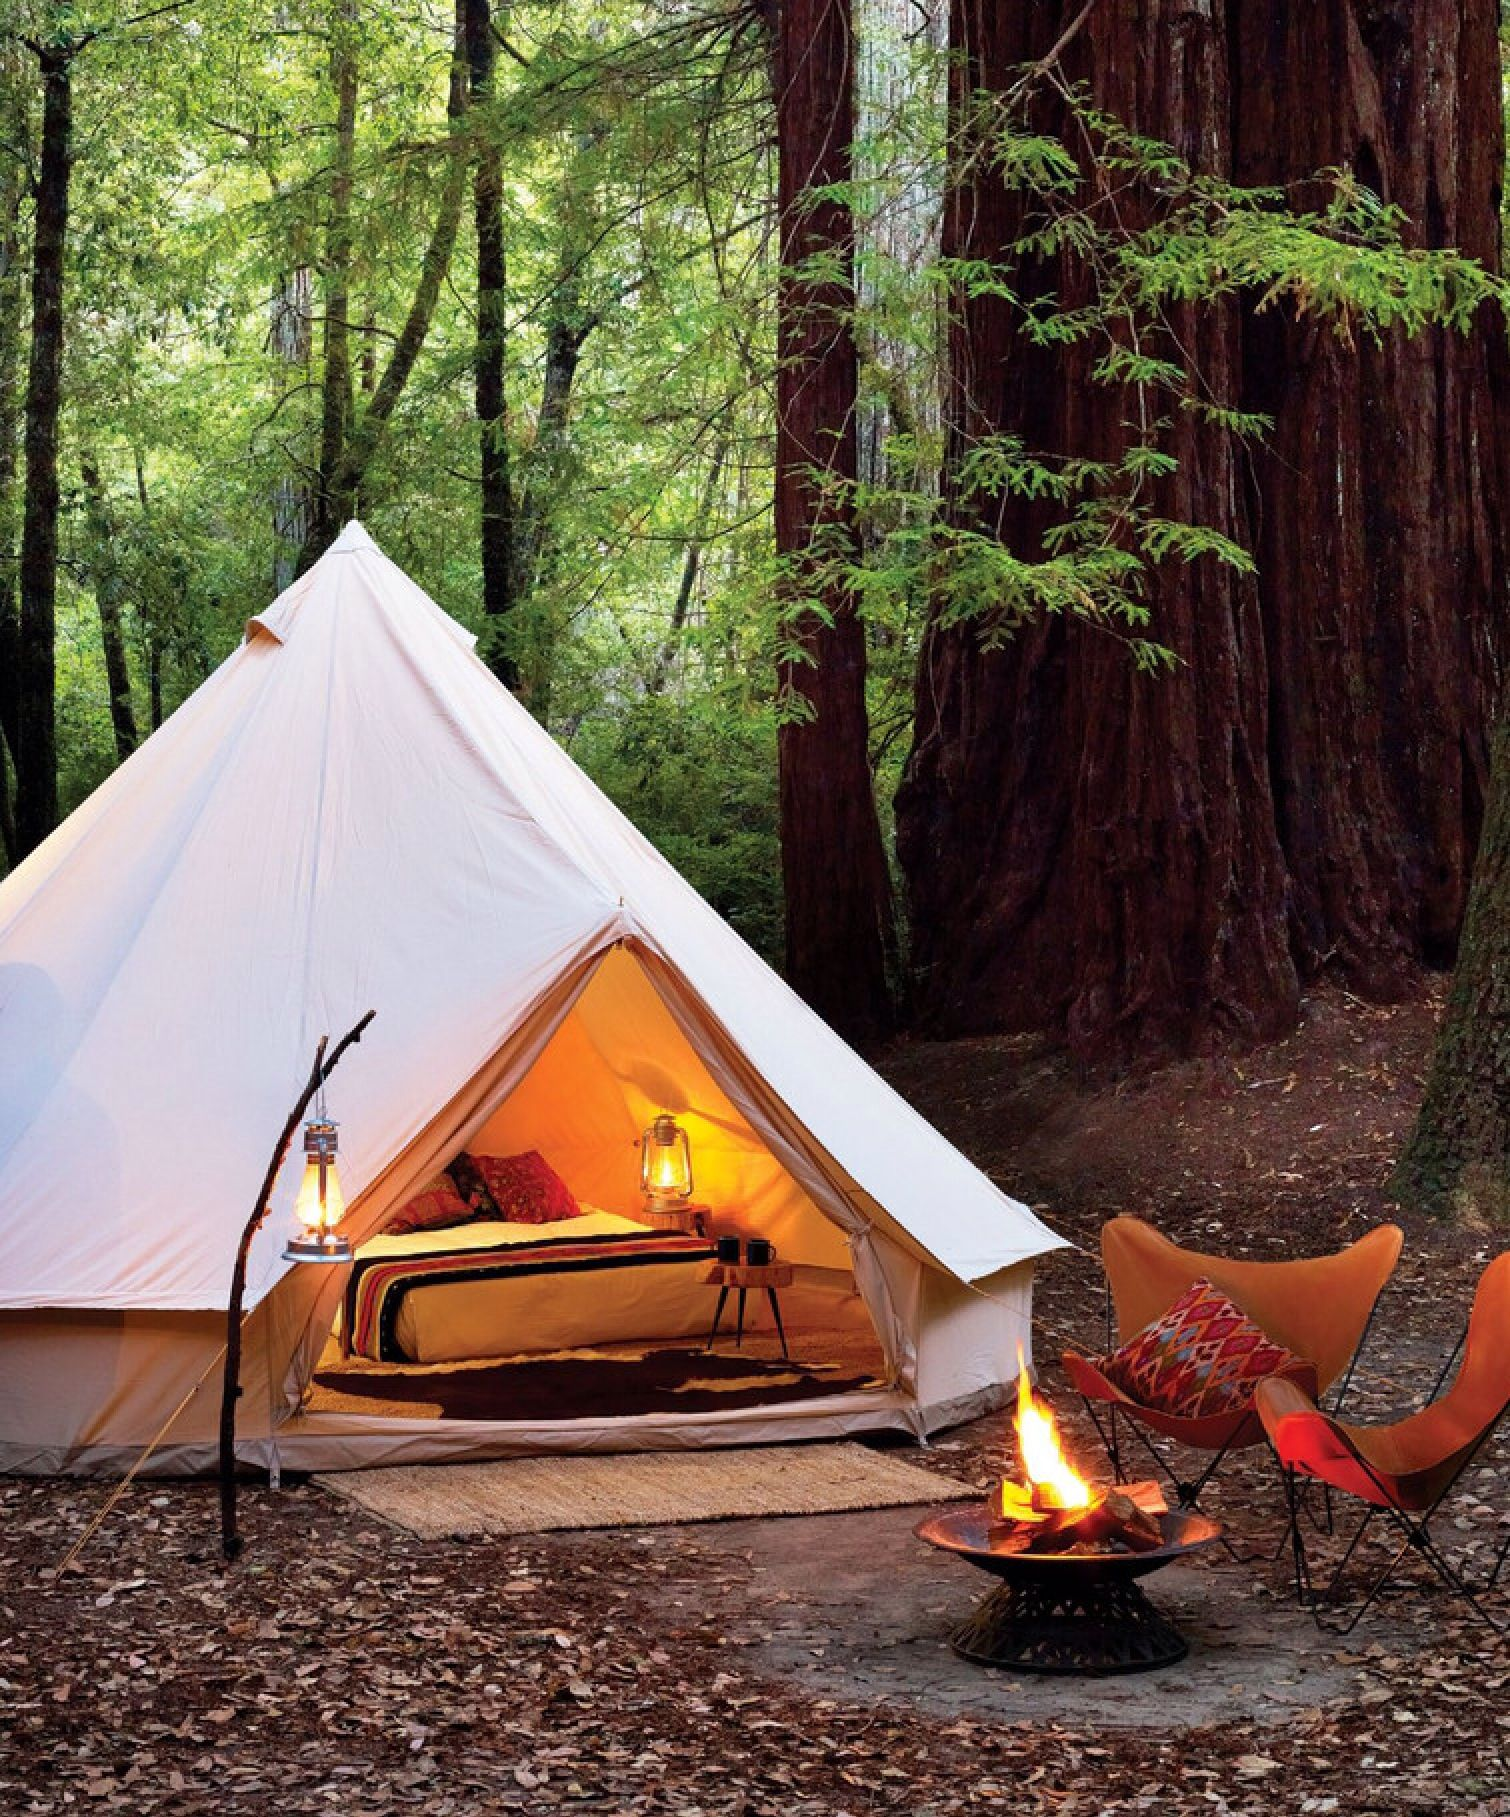 20+ Yurt Camping California Redwoods Pictures and Ideas on Weric